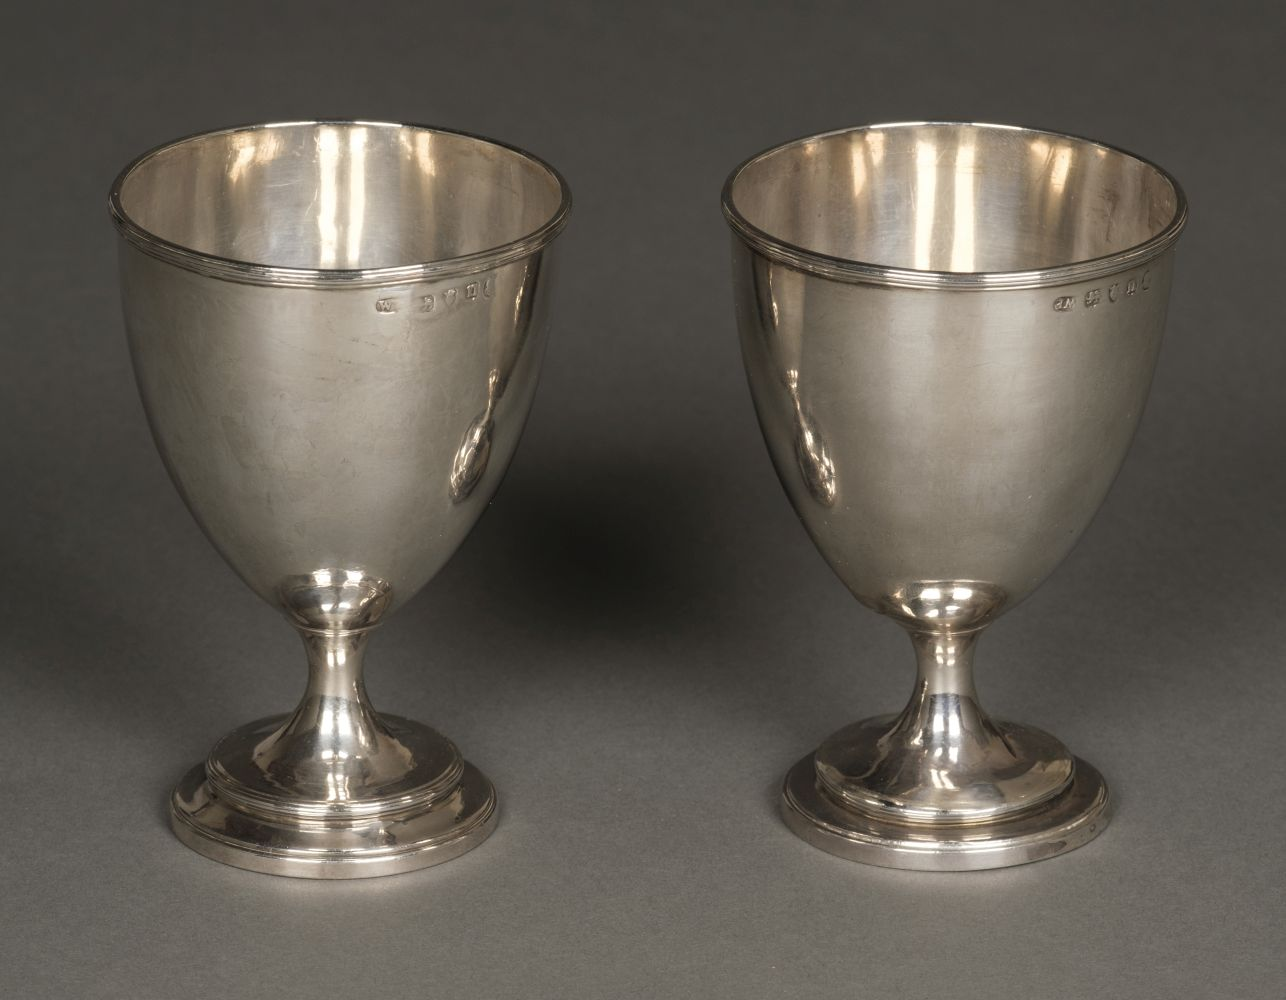 * Goblets. Pair of George III silver goblets by William Pitts, London, 1788